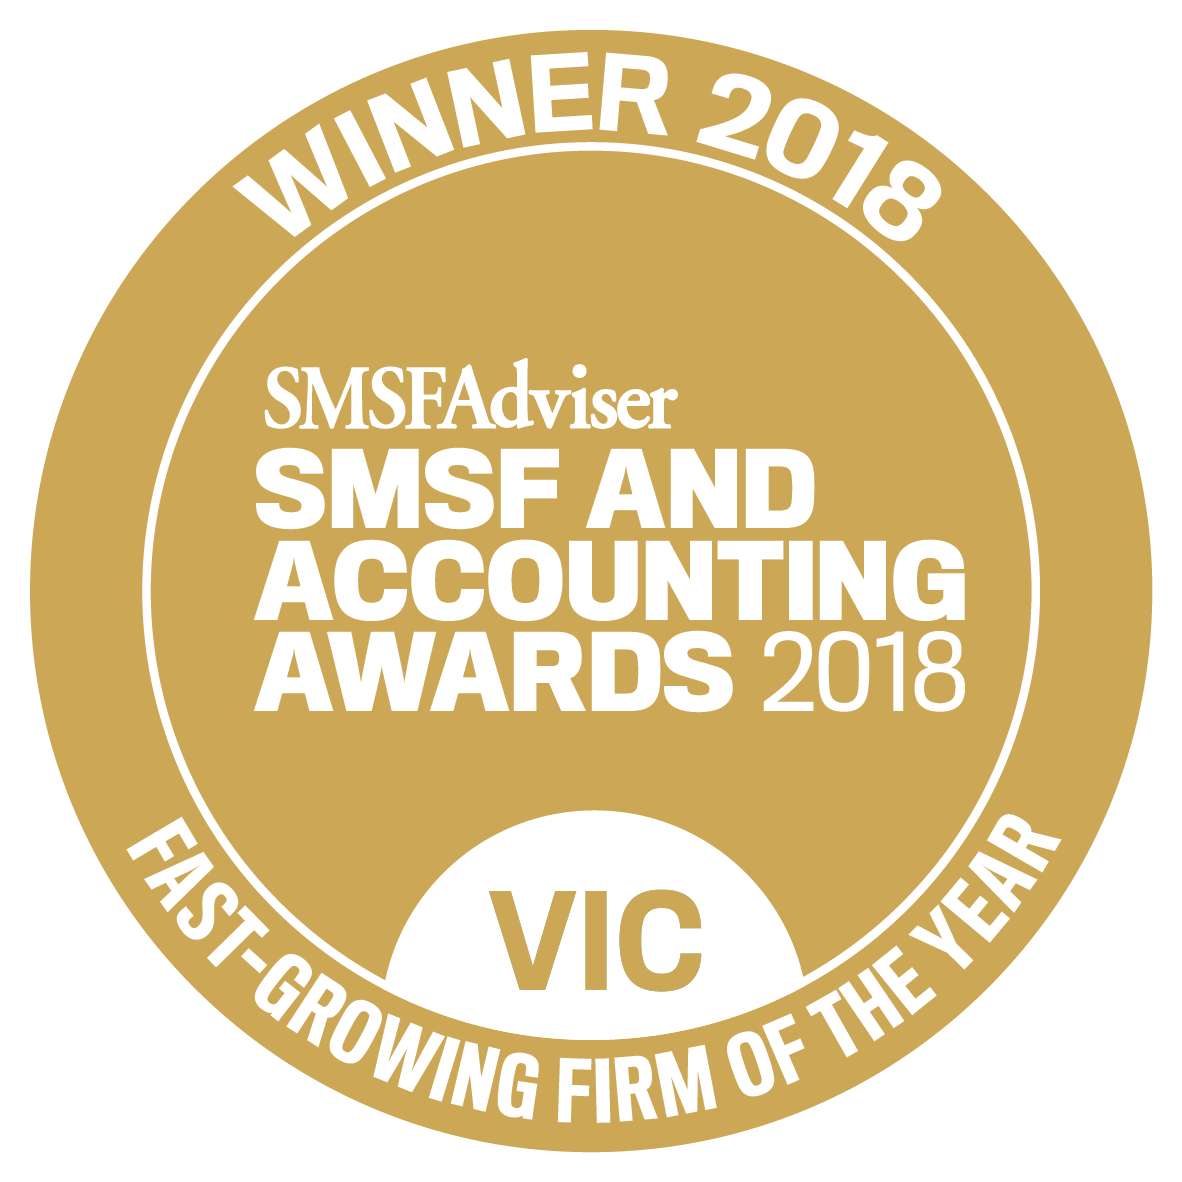 SMSF Fast-Growing Firm of the Year Award